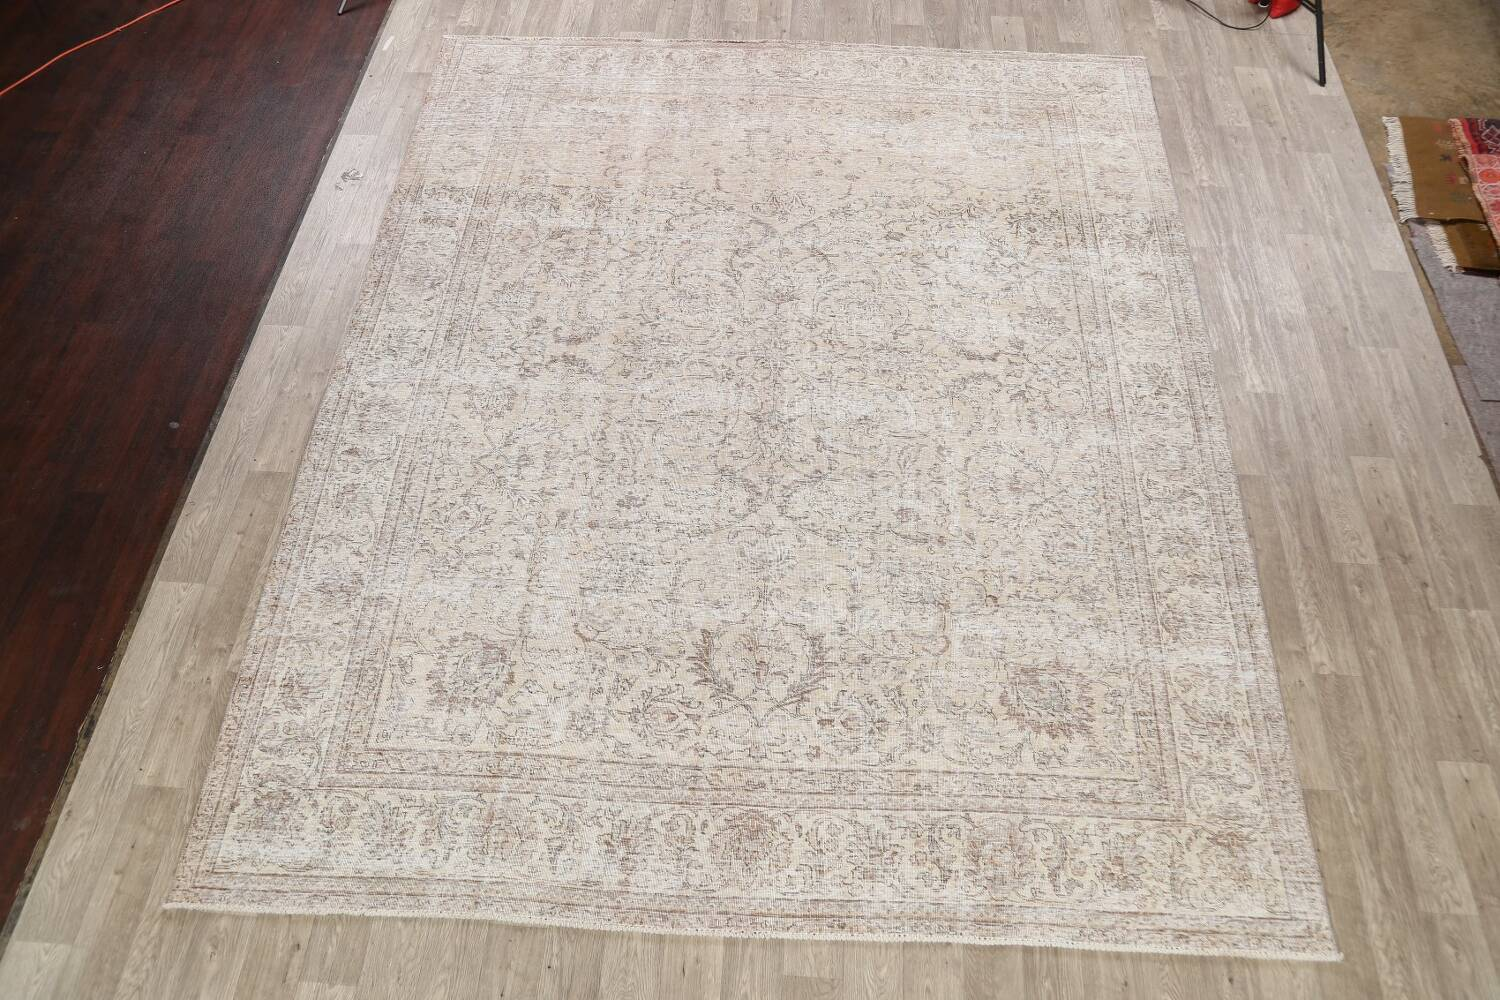 Antique Muted Floral Tabriz Persian Area Rug 9x12 image 2